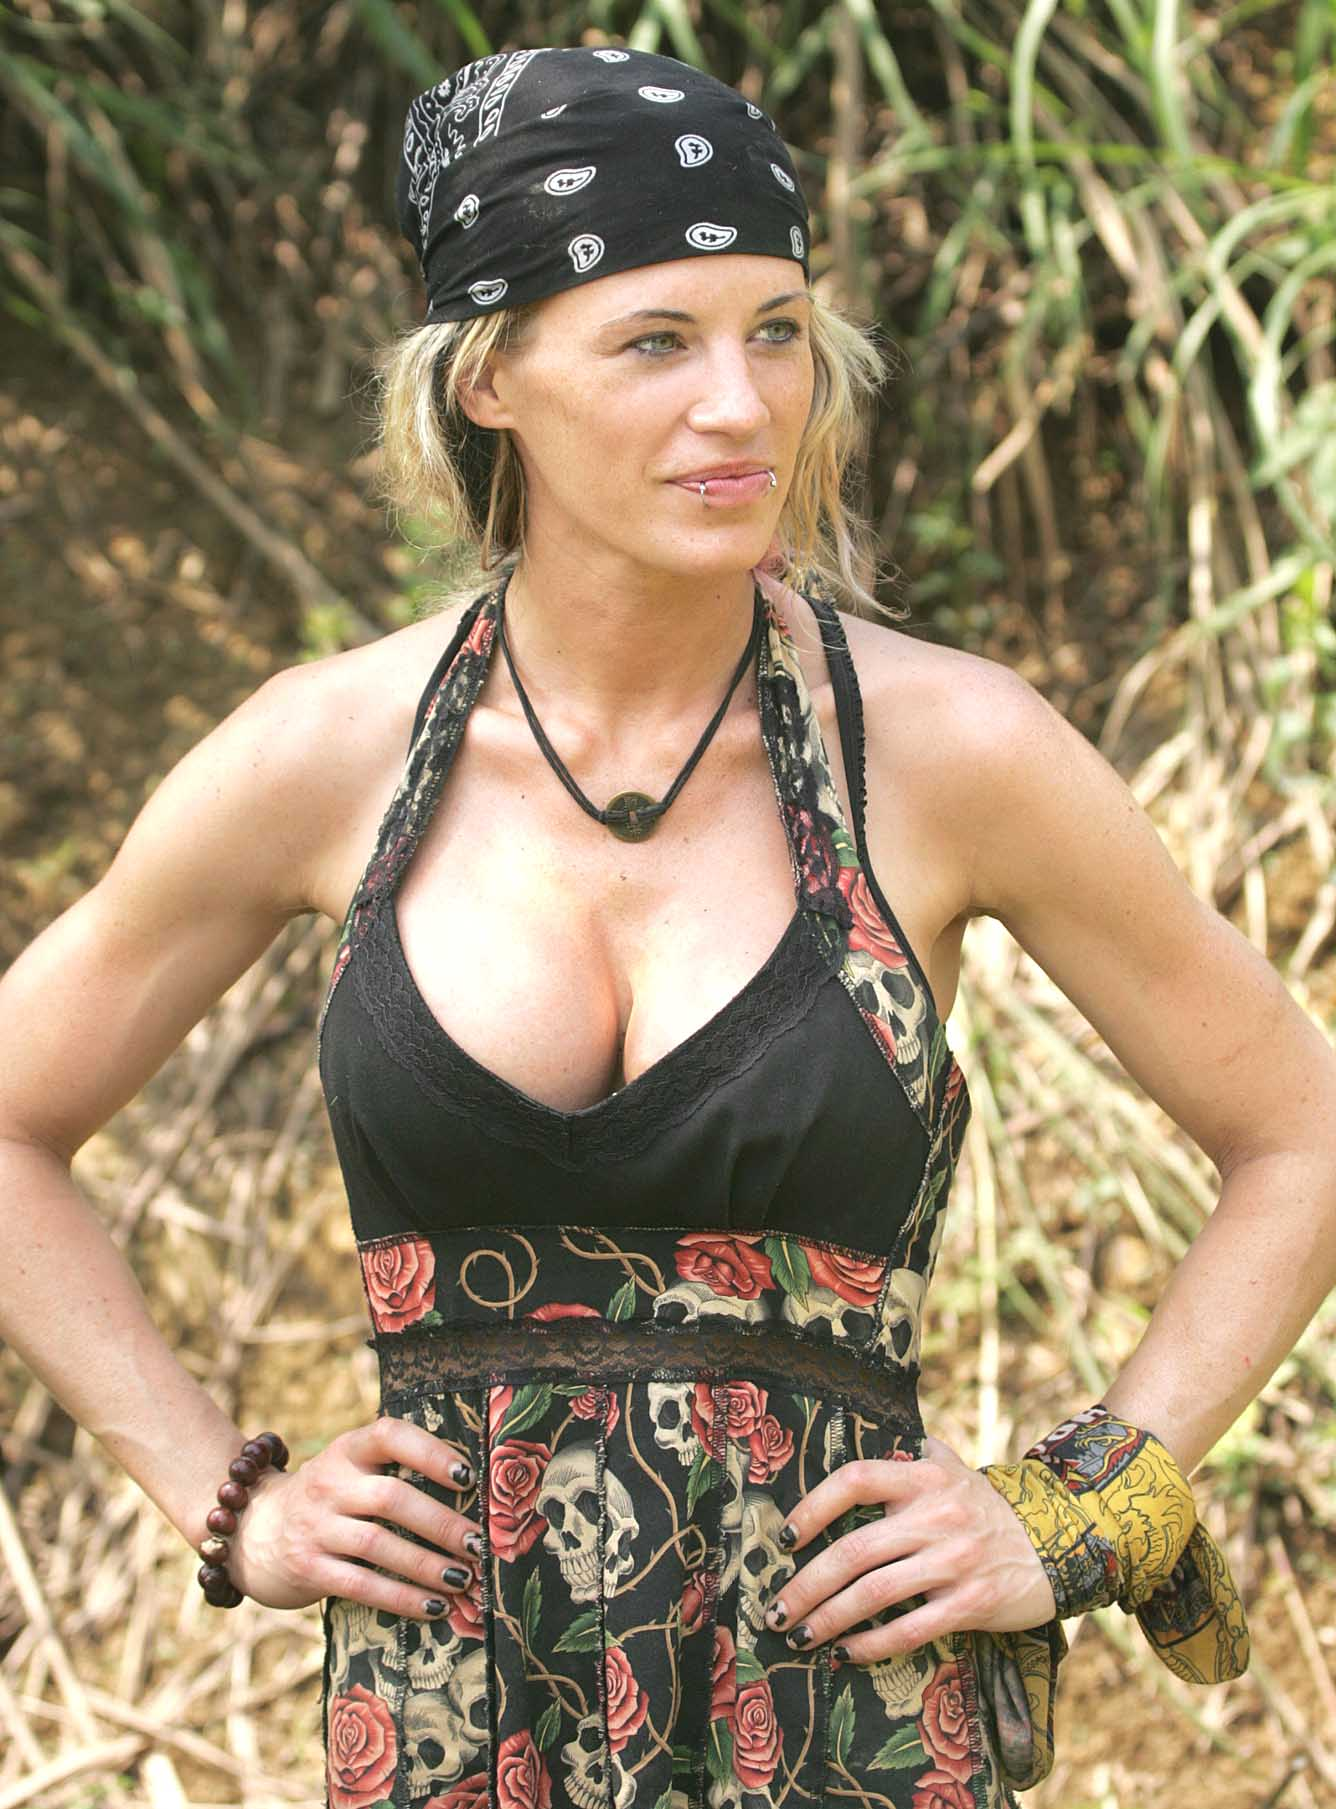 Outside of wrestling, Ashley Massaro did model work in magazines and could be seen in TV programs such as Survivor: China.